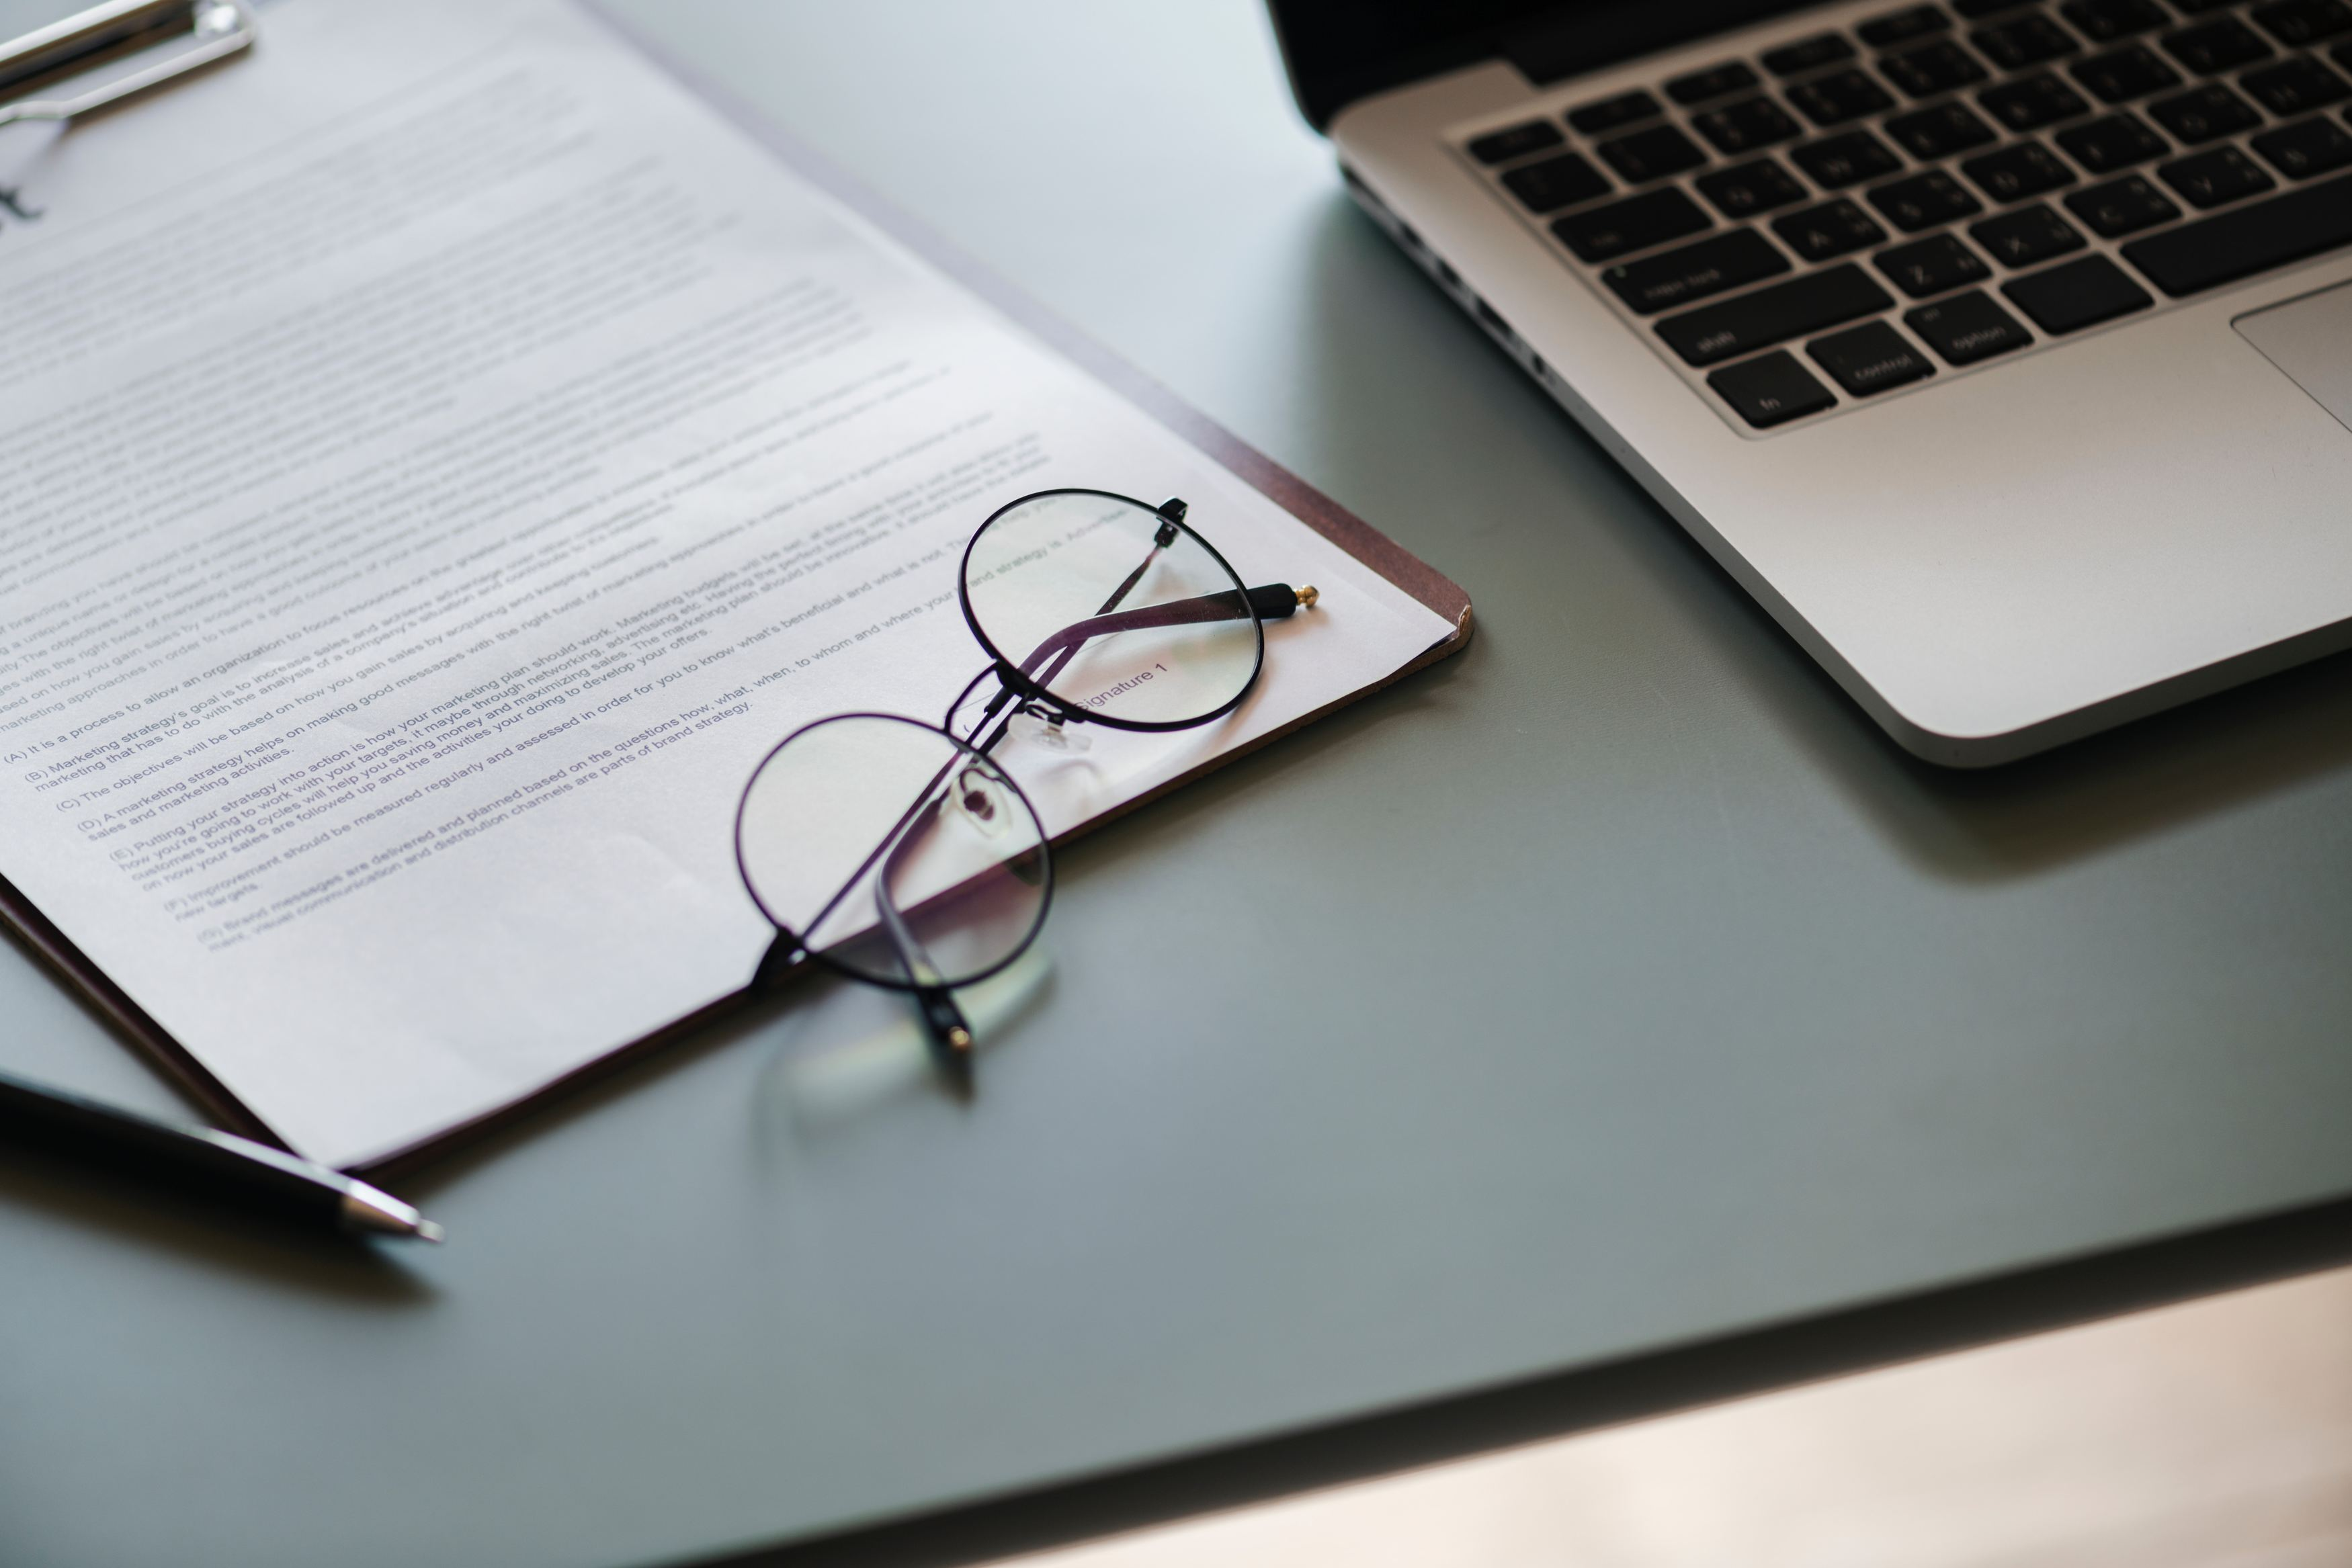 contract with glasses and laptop Photo by rawpixel on Unsplash